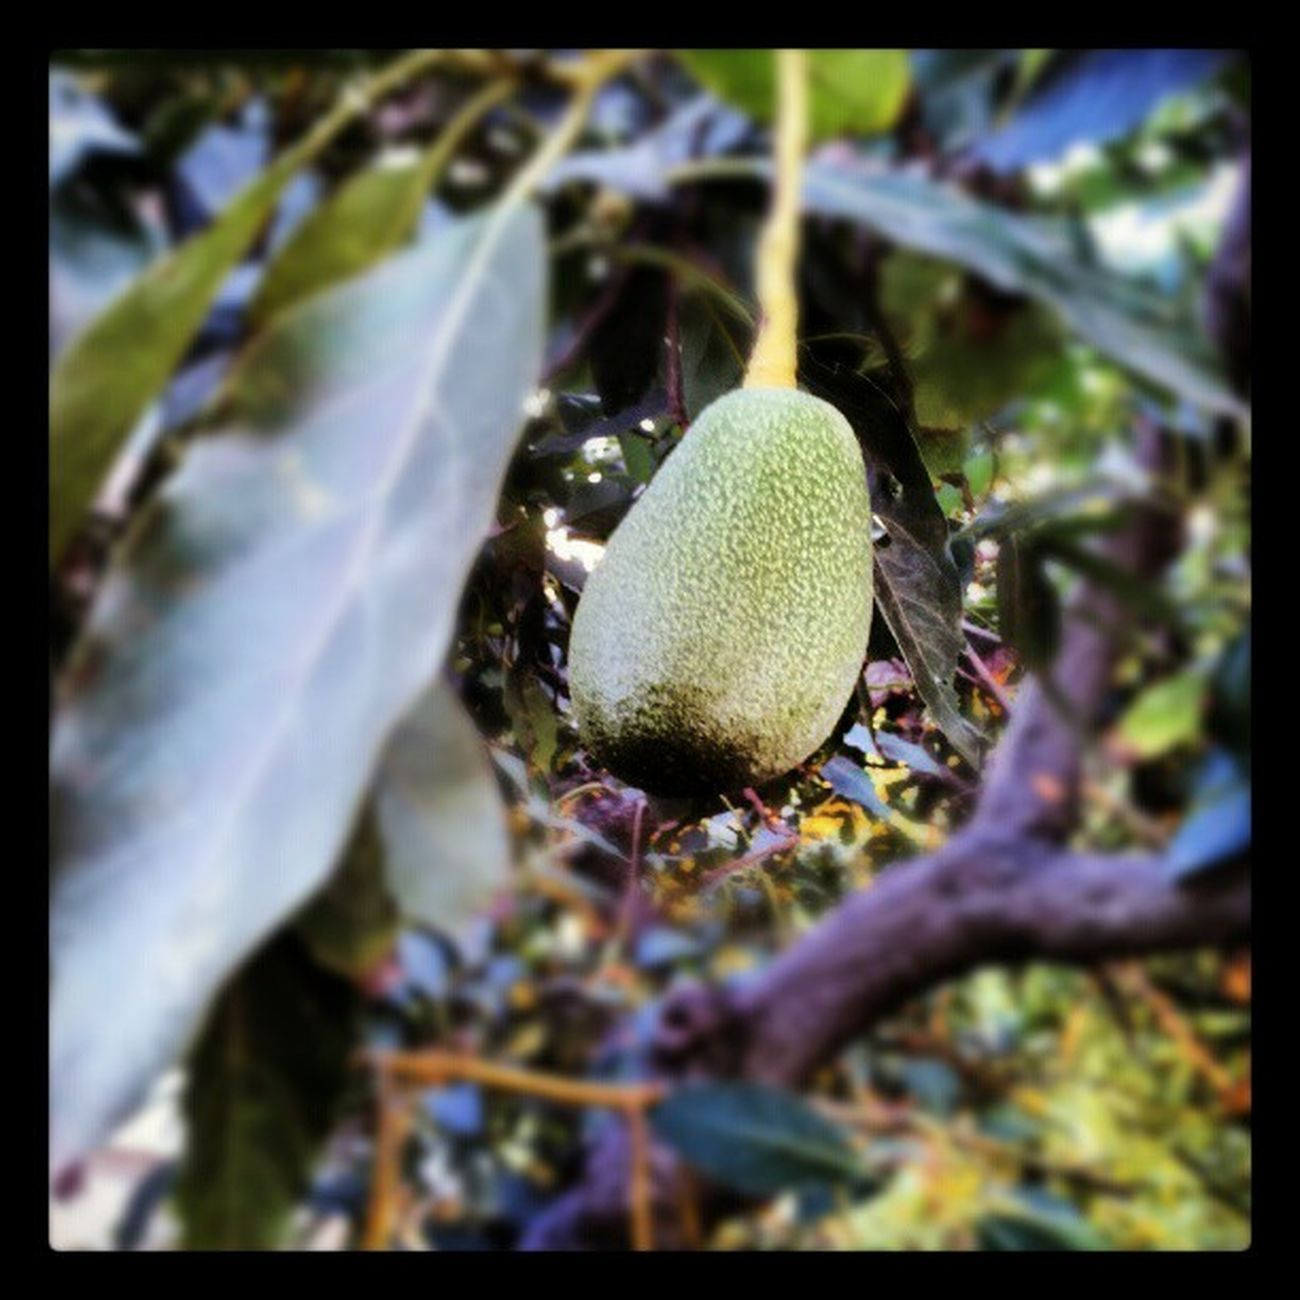 @pickingavocados the only way I know how, in the Treetops Avocados Climbingtrees Futureguacamole avocado